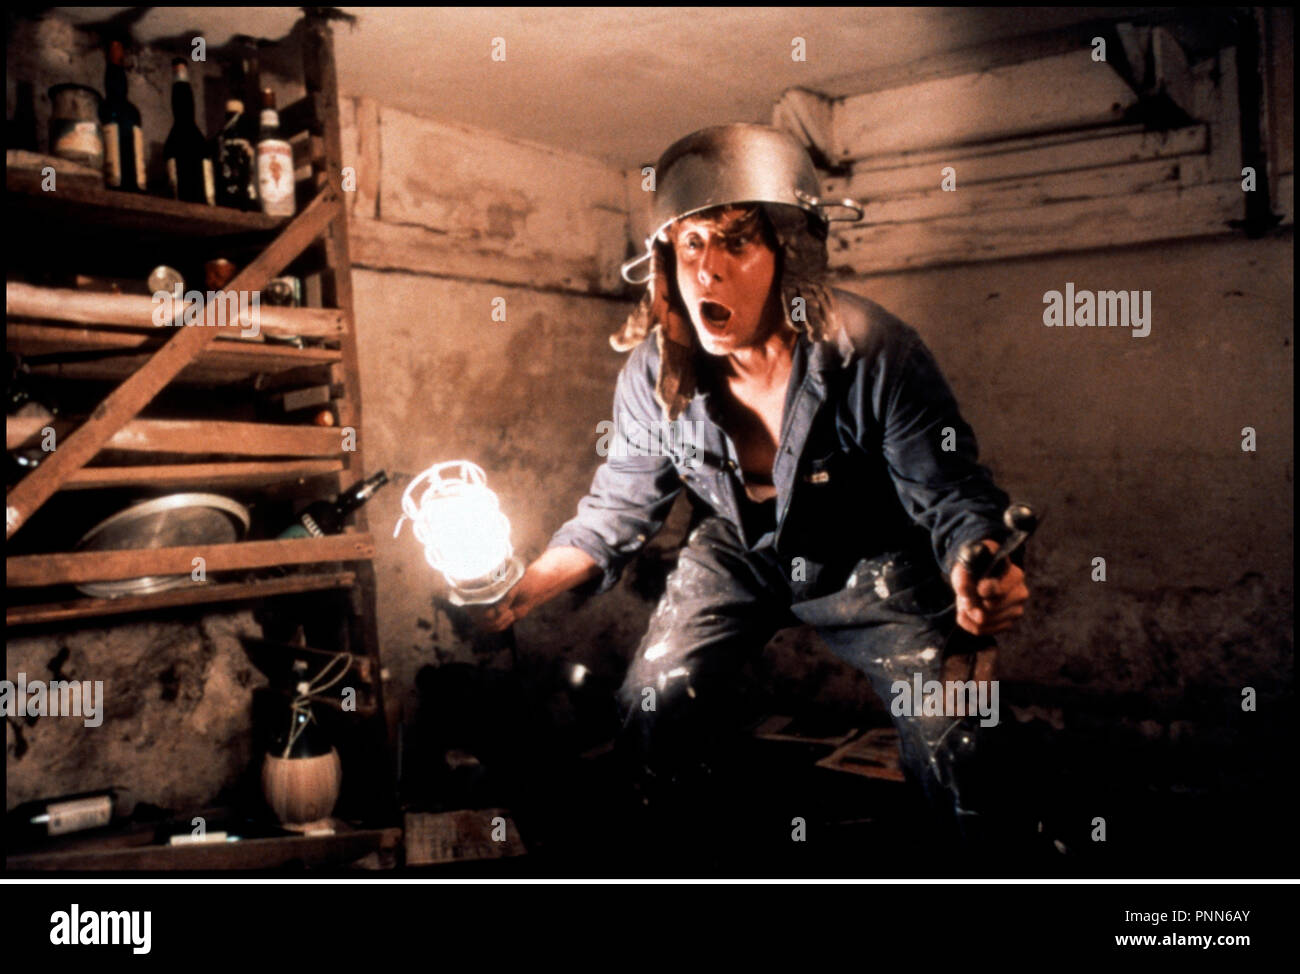 Anders W Stock Photos & Anders W Stock Images - Alamy